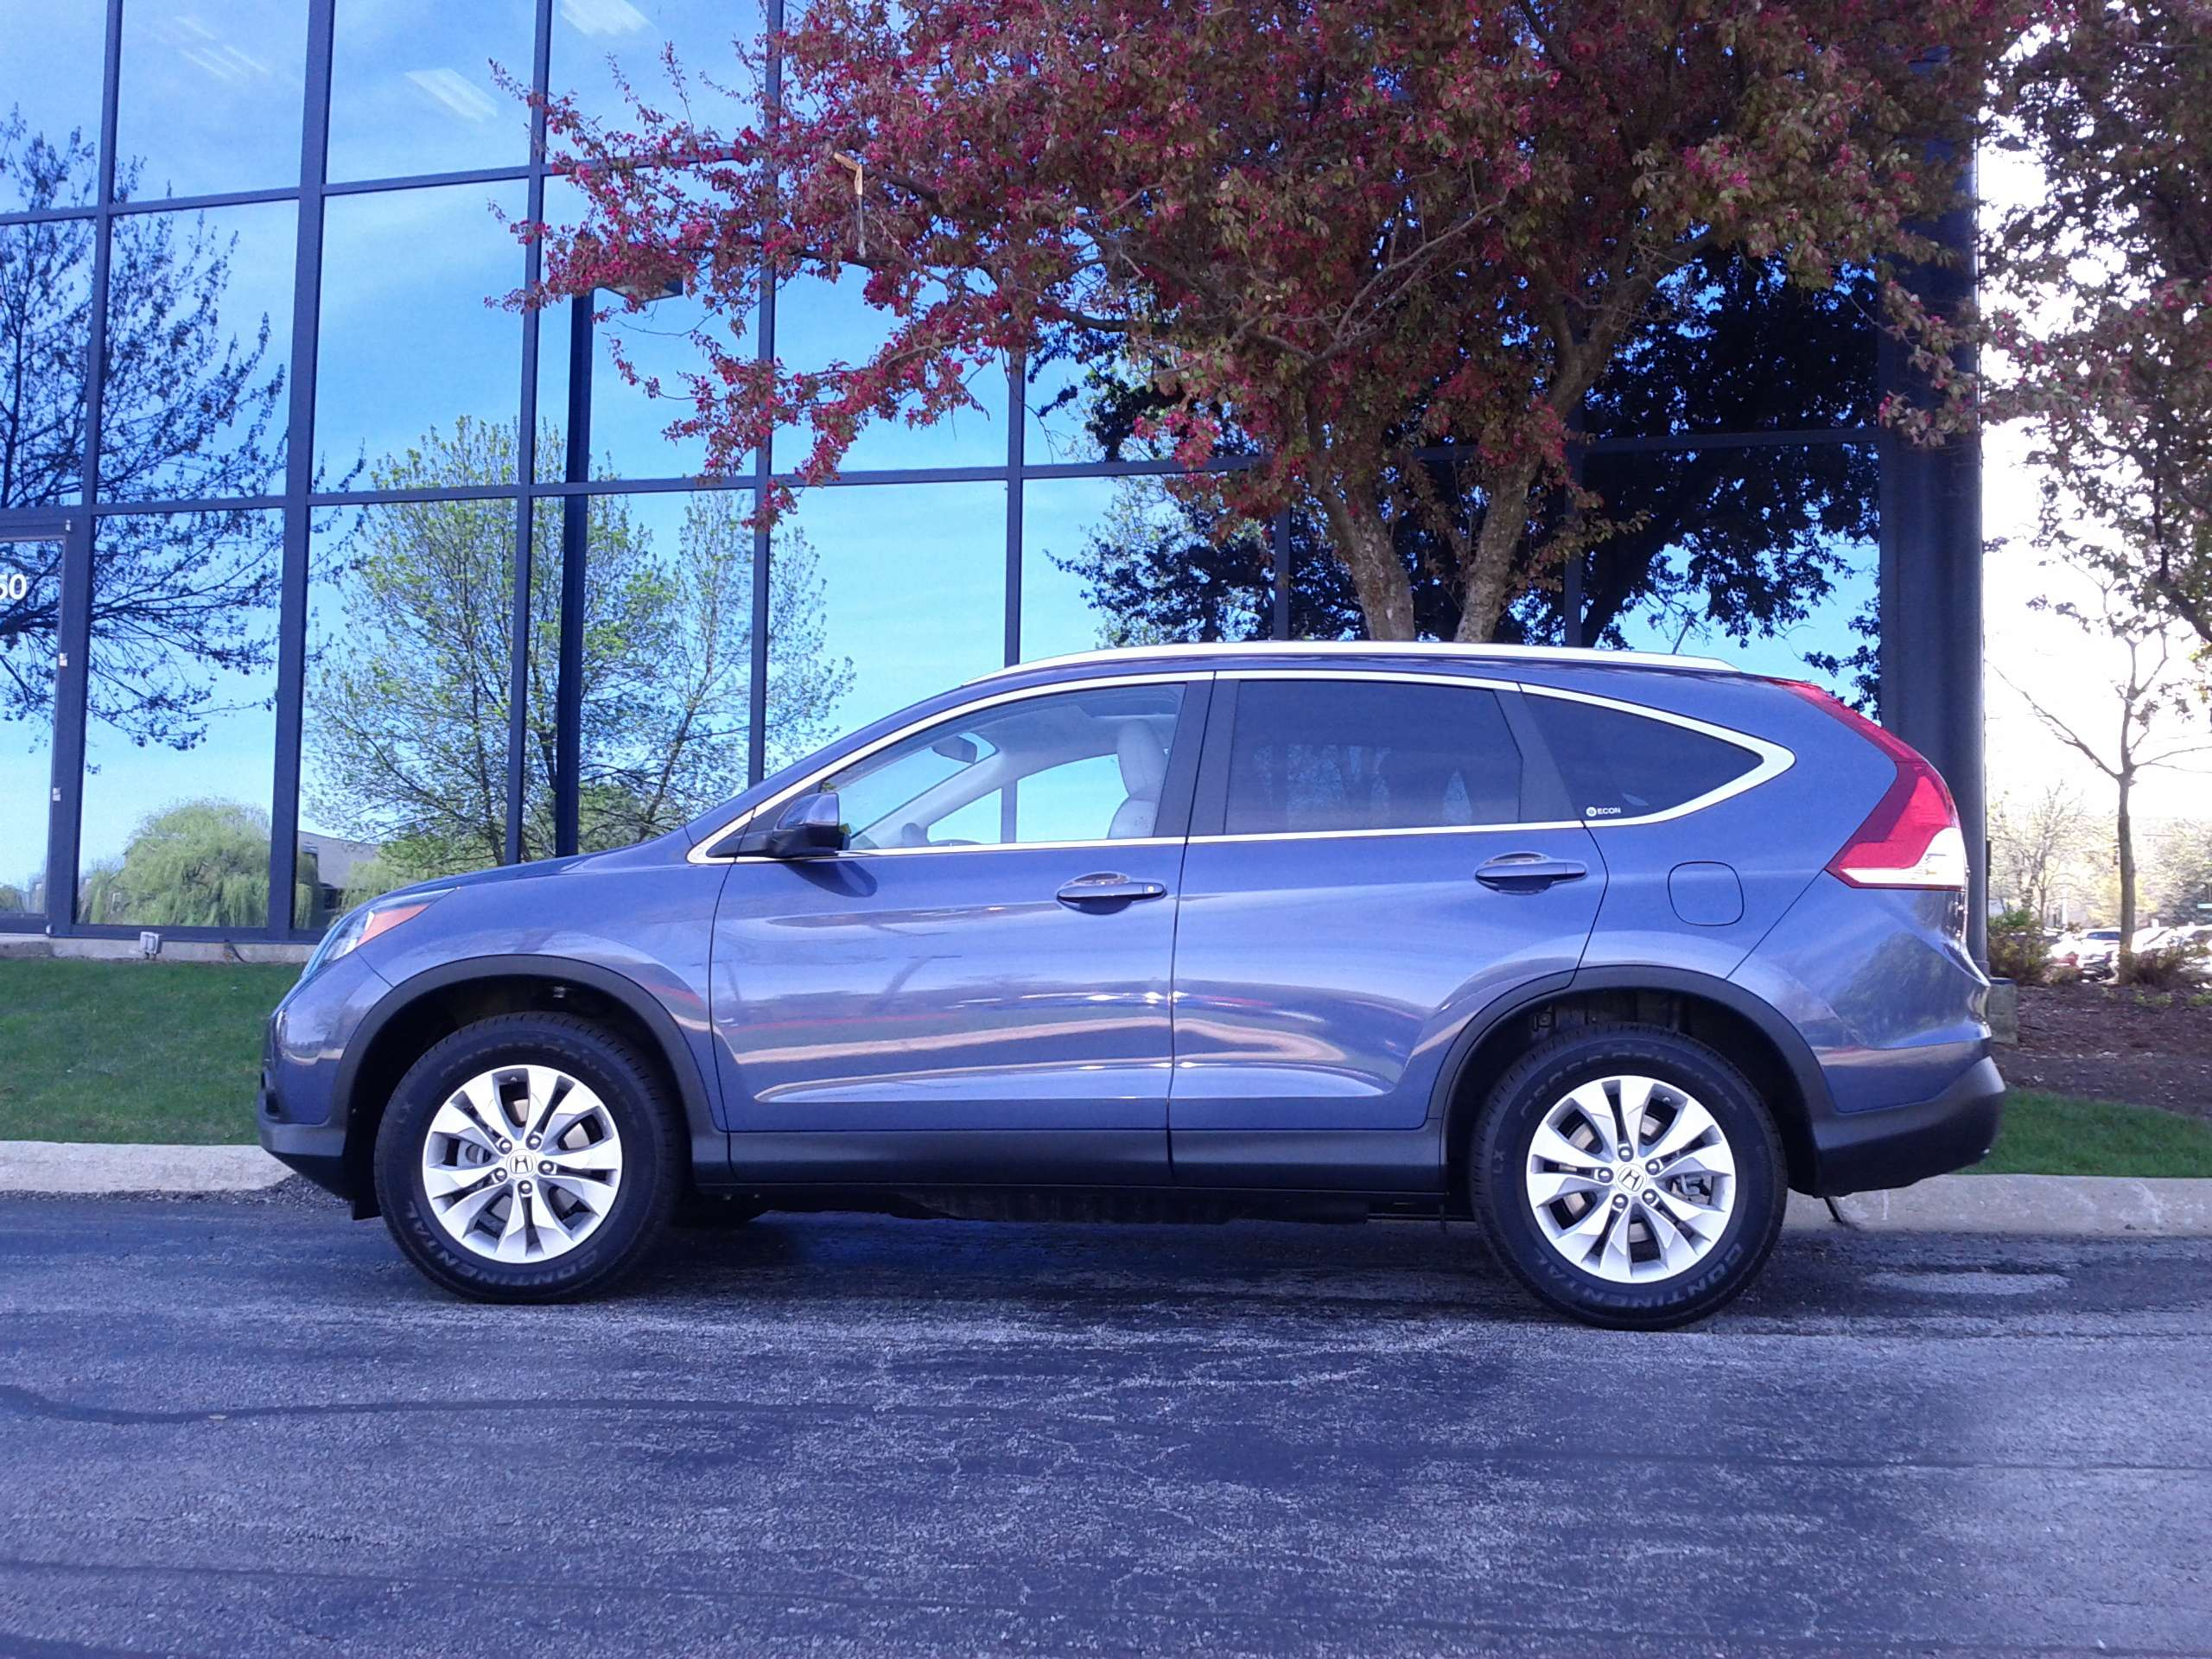 2012 Honda CR-V proves to be pleasant surprise